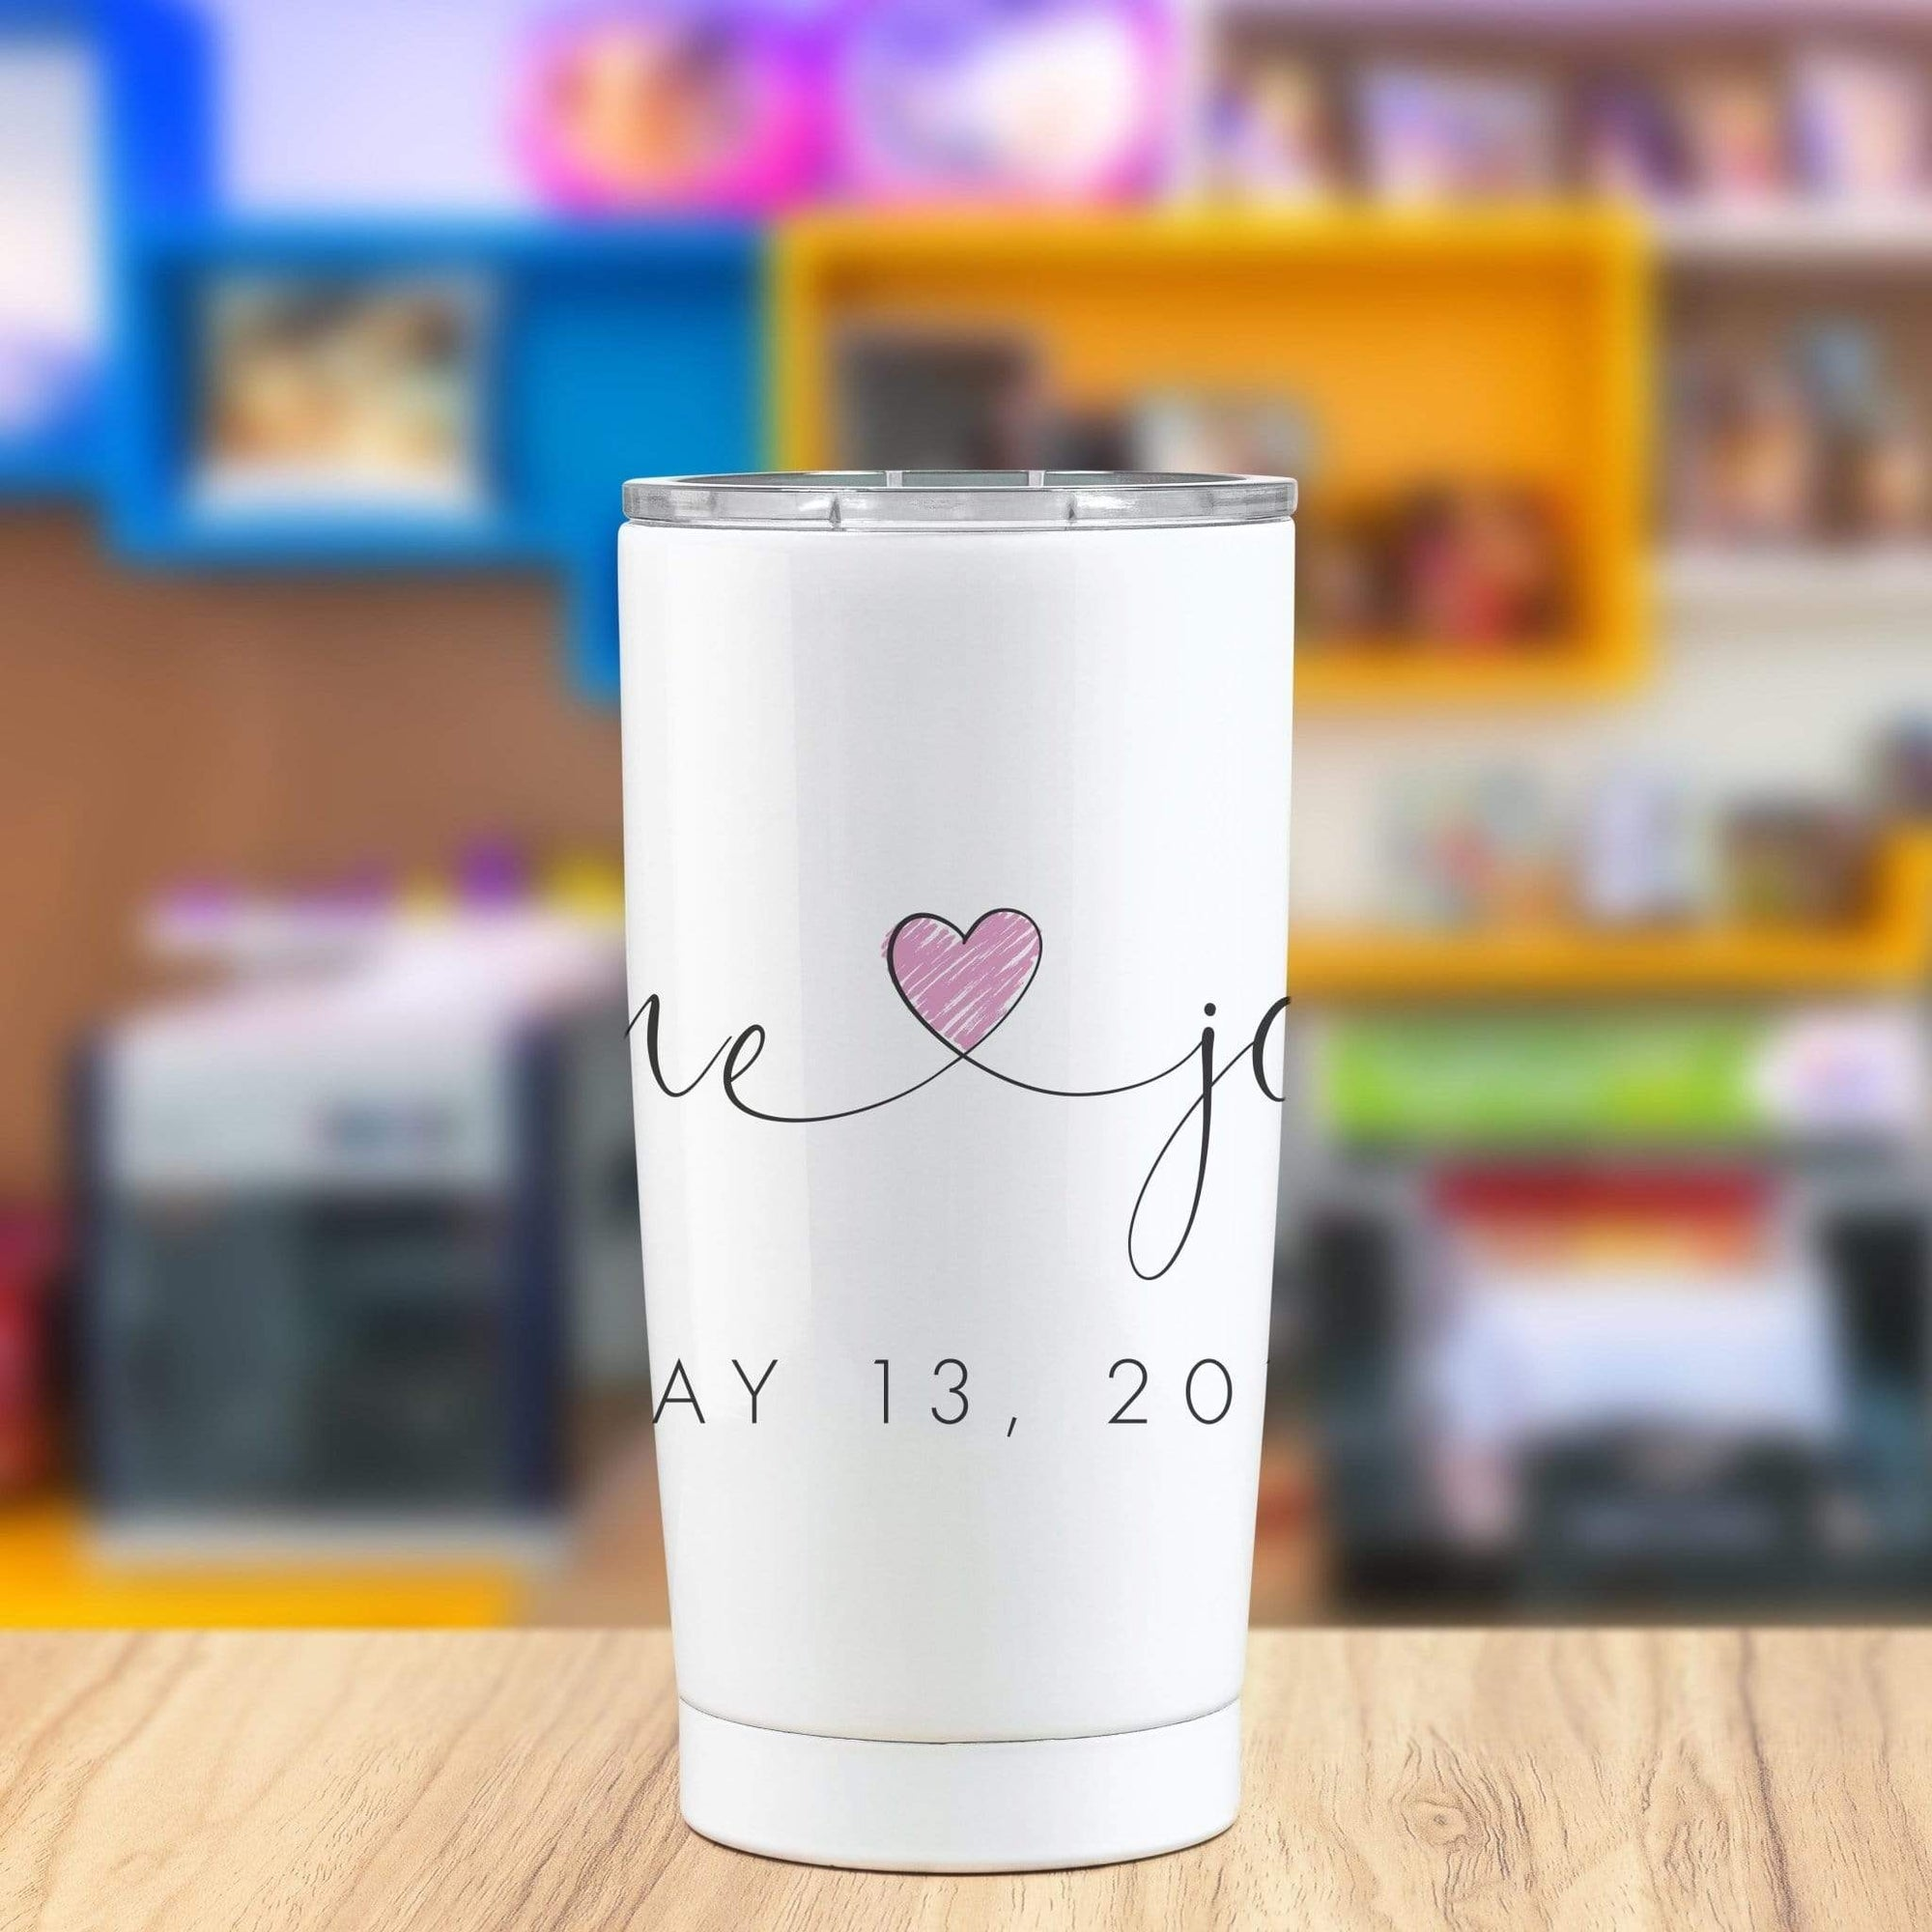 Leanne & Co. Tumbler White Customized Couple Tumbler